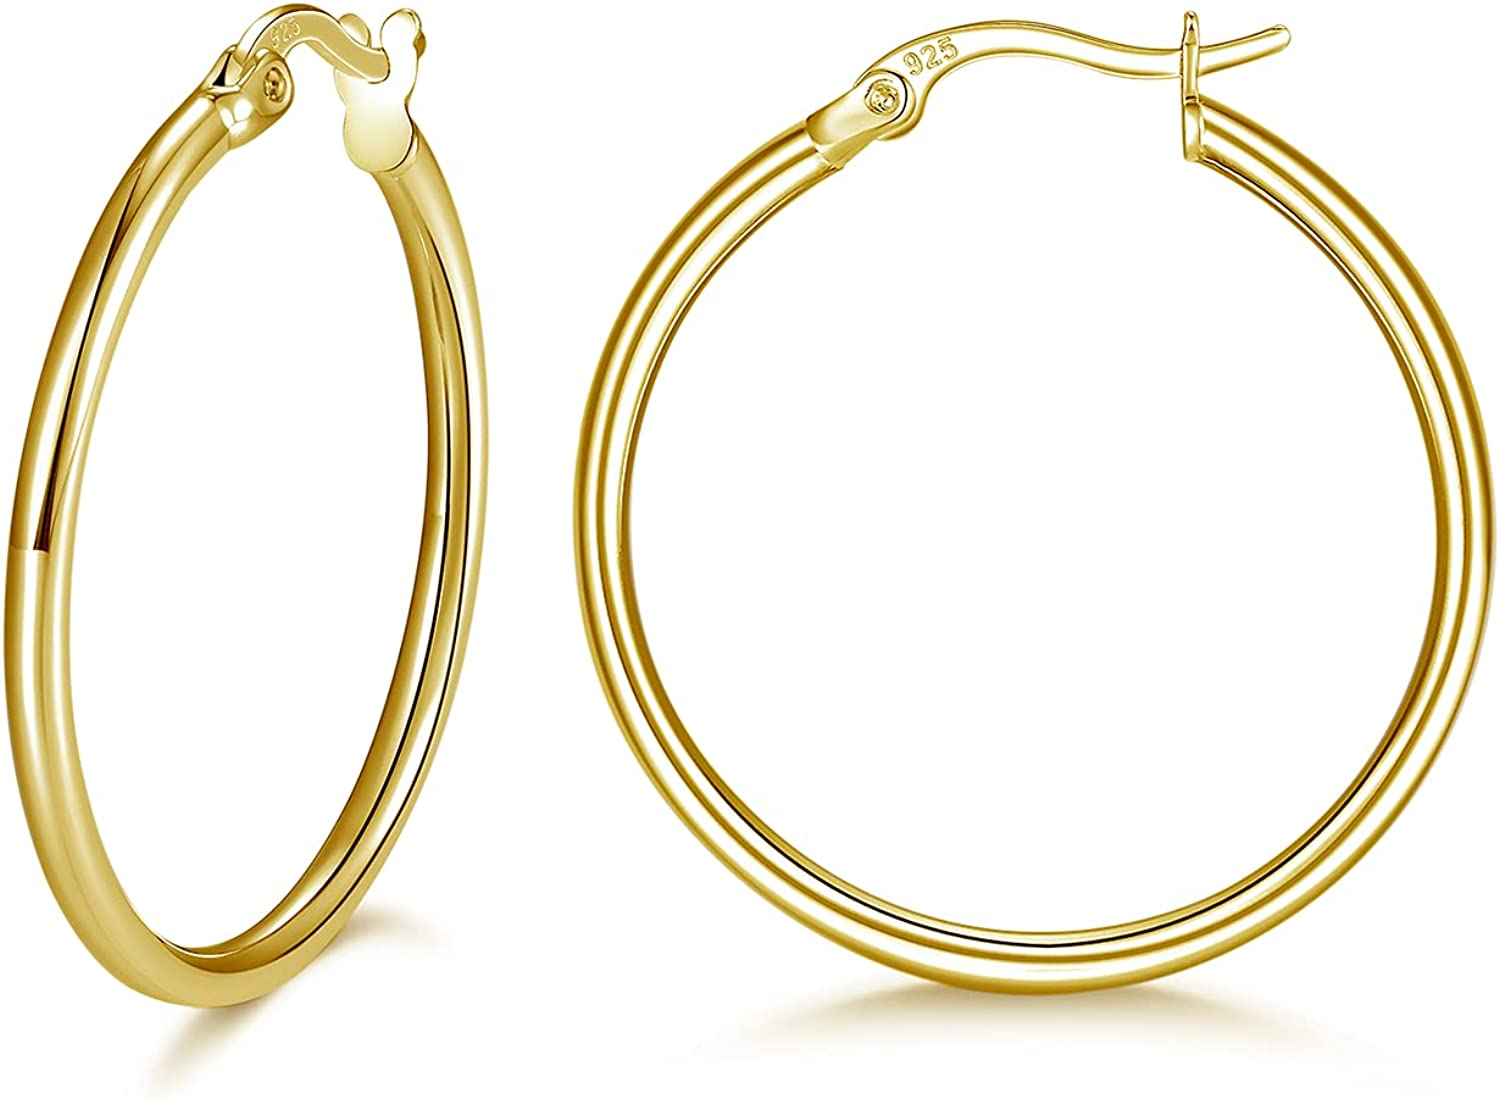 GULICX Sterling Silver Small 5% OFF Hoop H Stud Earrings Hypoallergenic Al sold out.